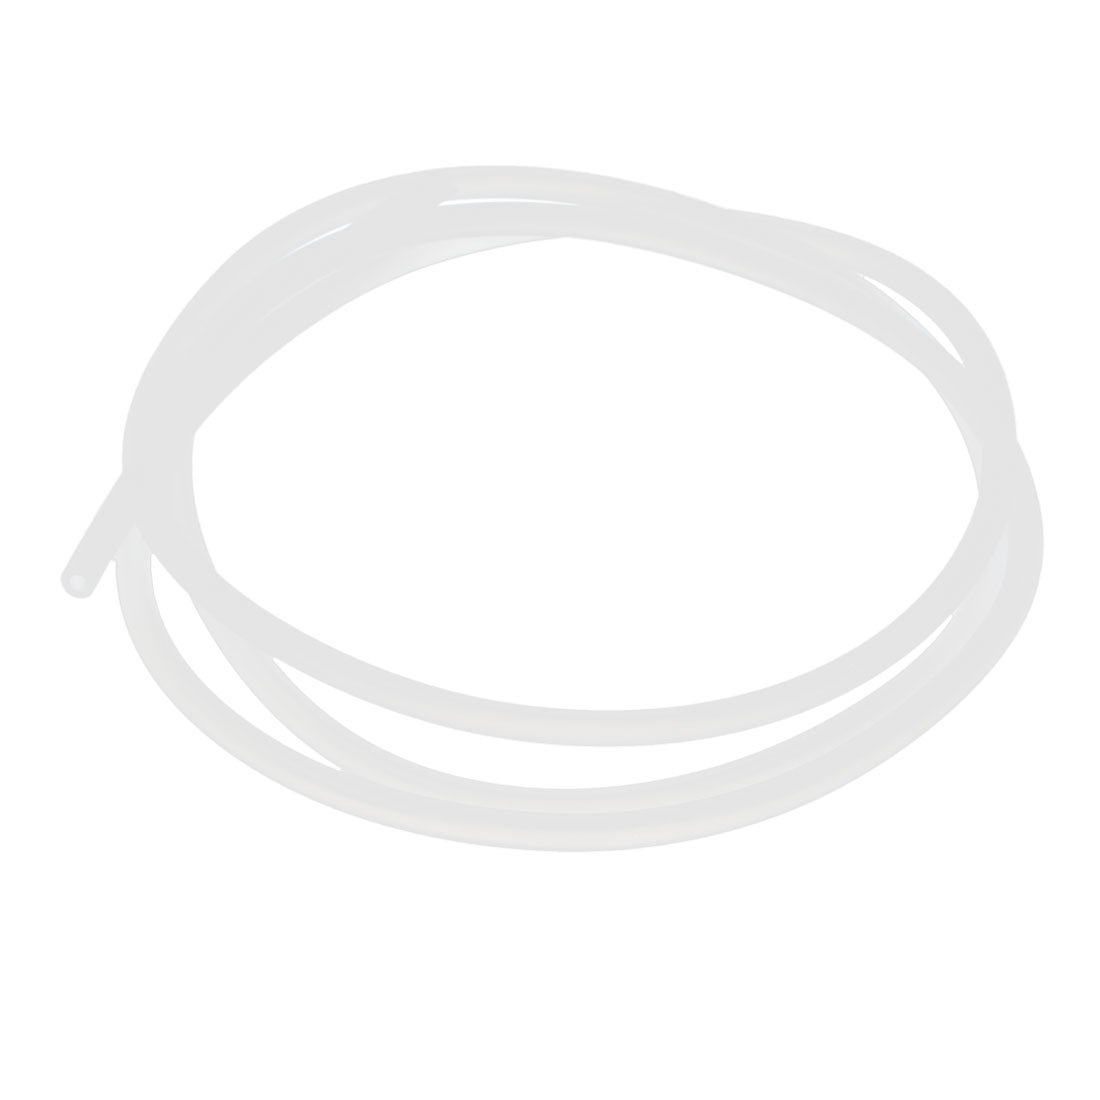 uxcell 2mm x 4mm Translucent Silicone Tube Repalcing Hose Pipe 1M Long